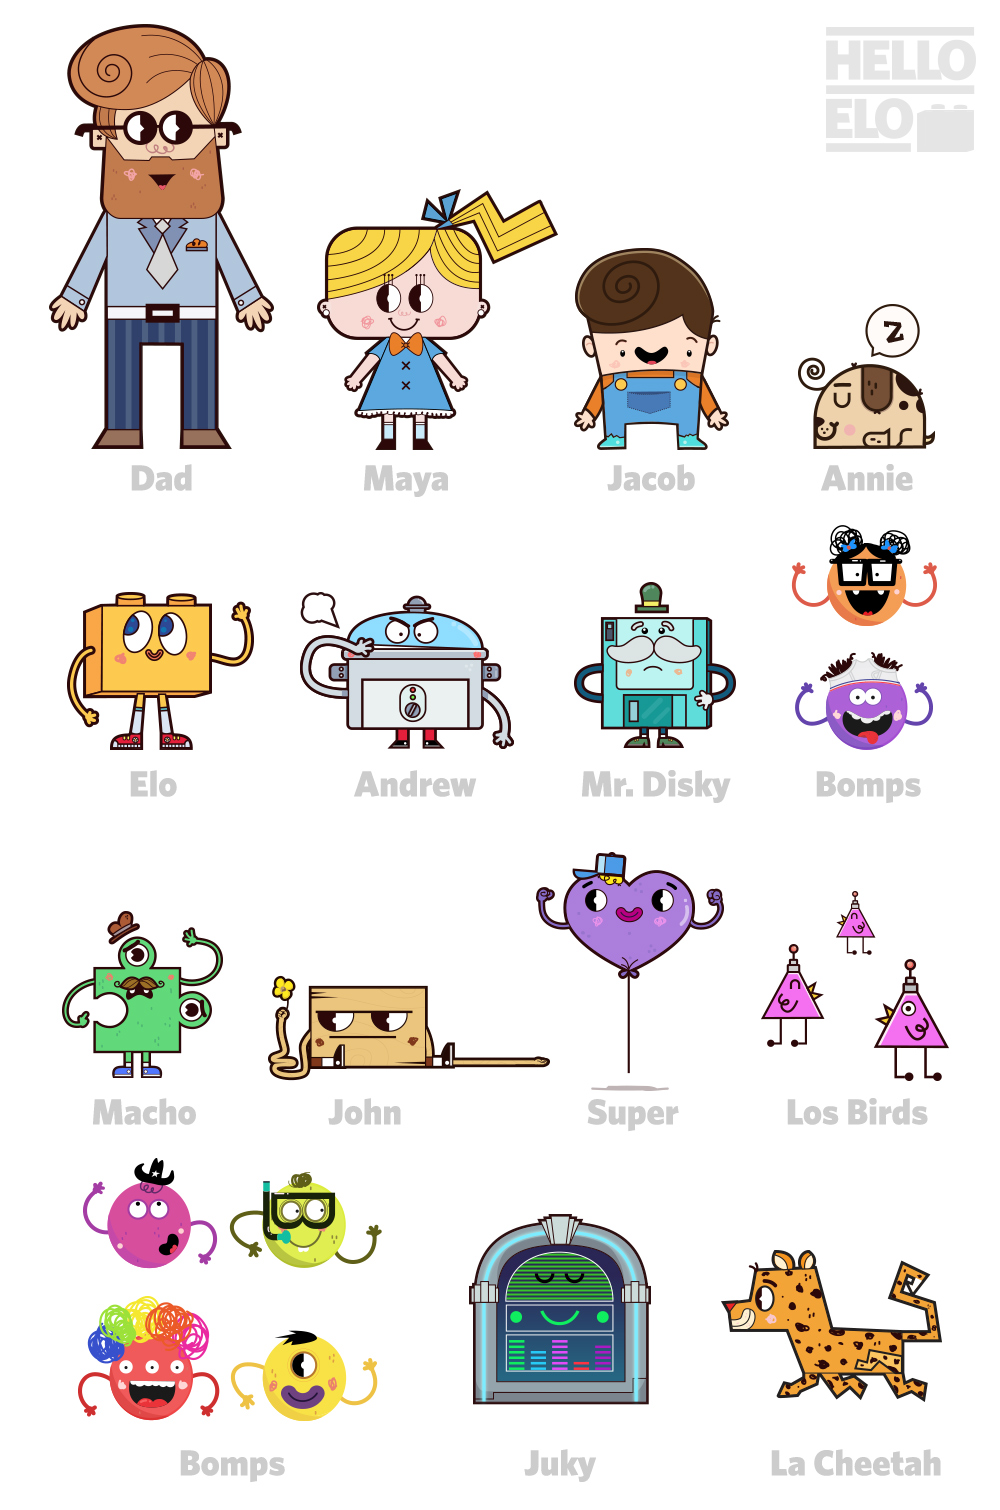 Hello Elo Character Design Character development for WeeFeel's brand Hello Elo. Baked with love. Right from the heart.